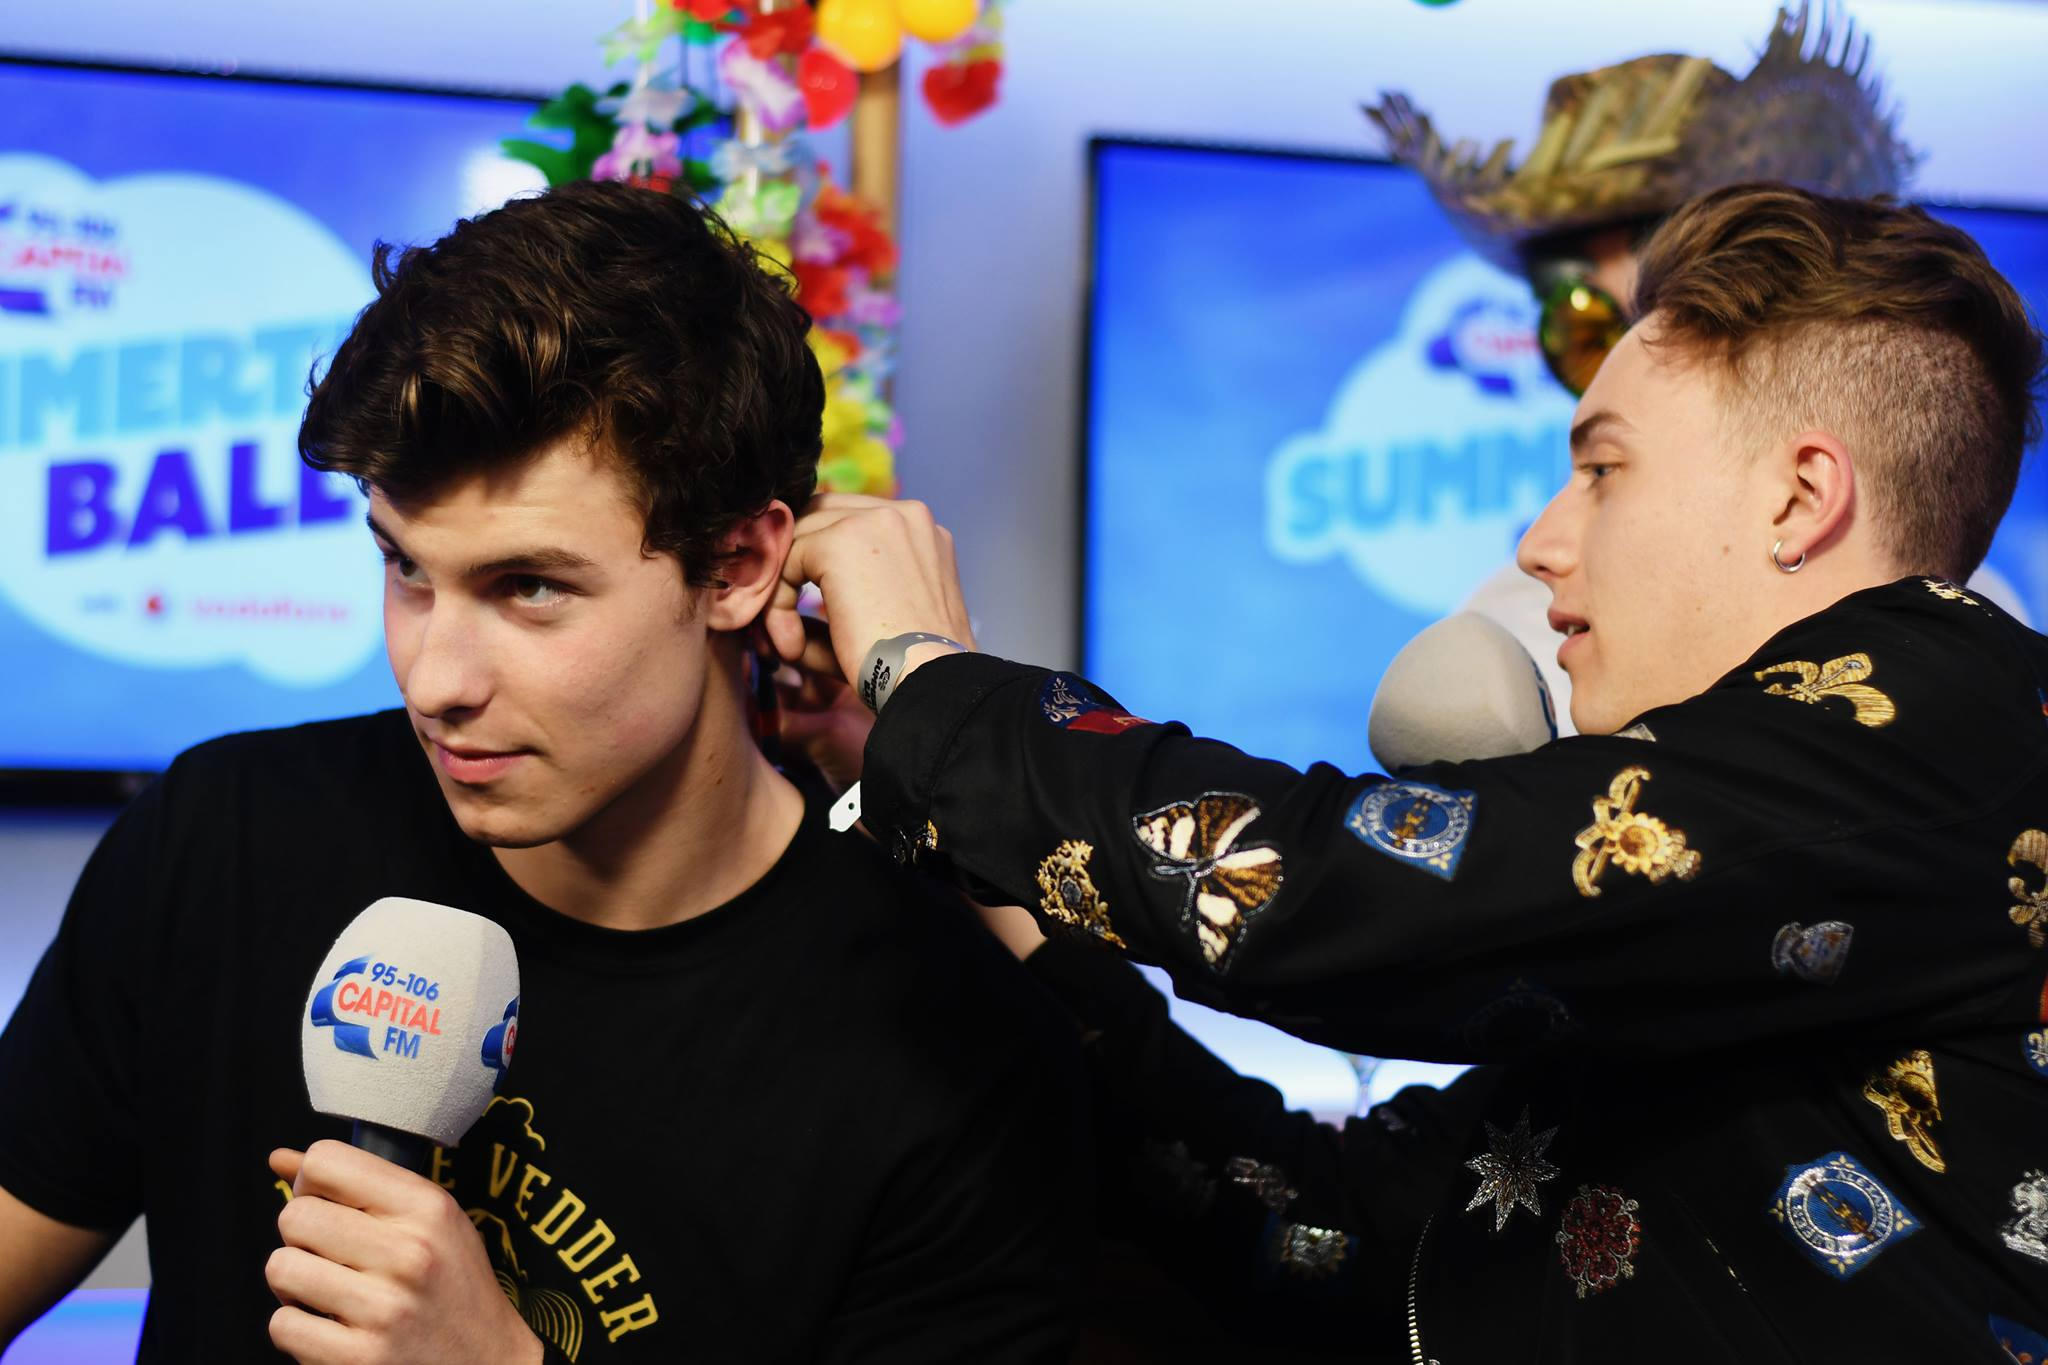 Shawn Mendes Summertime Ball 2017